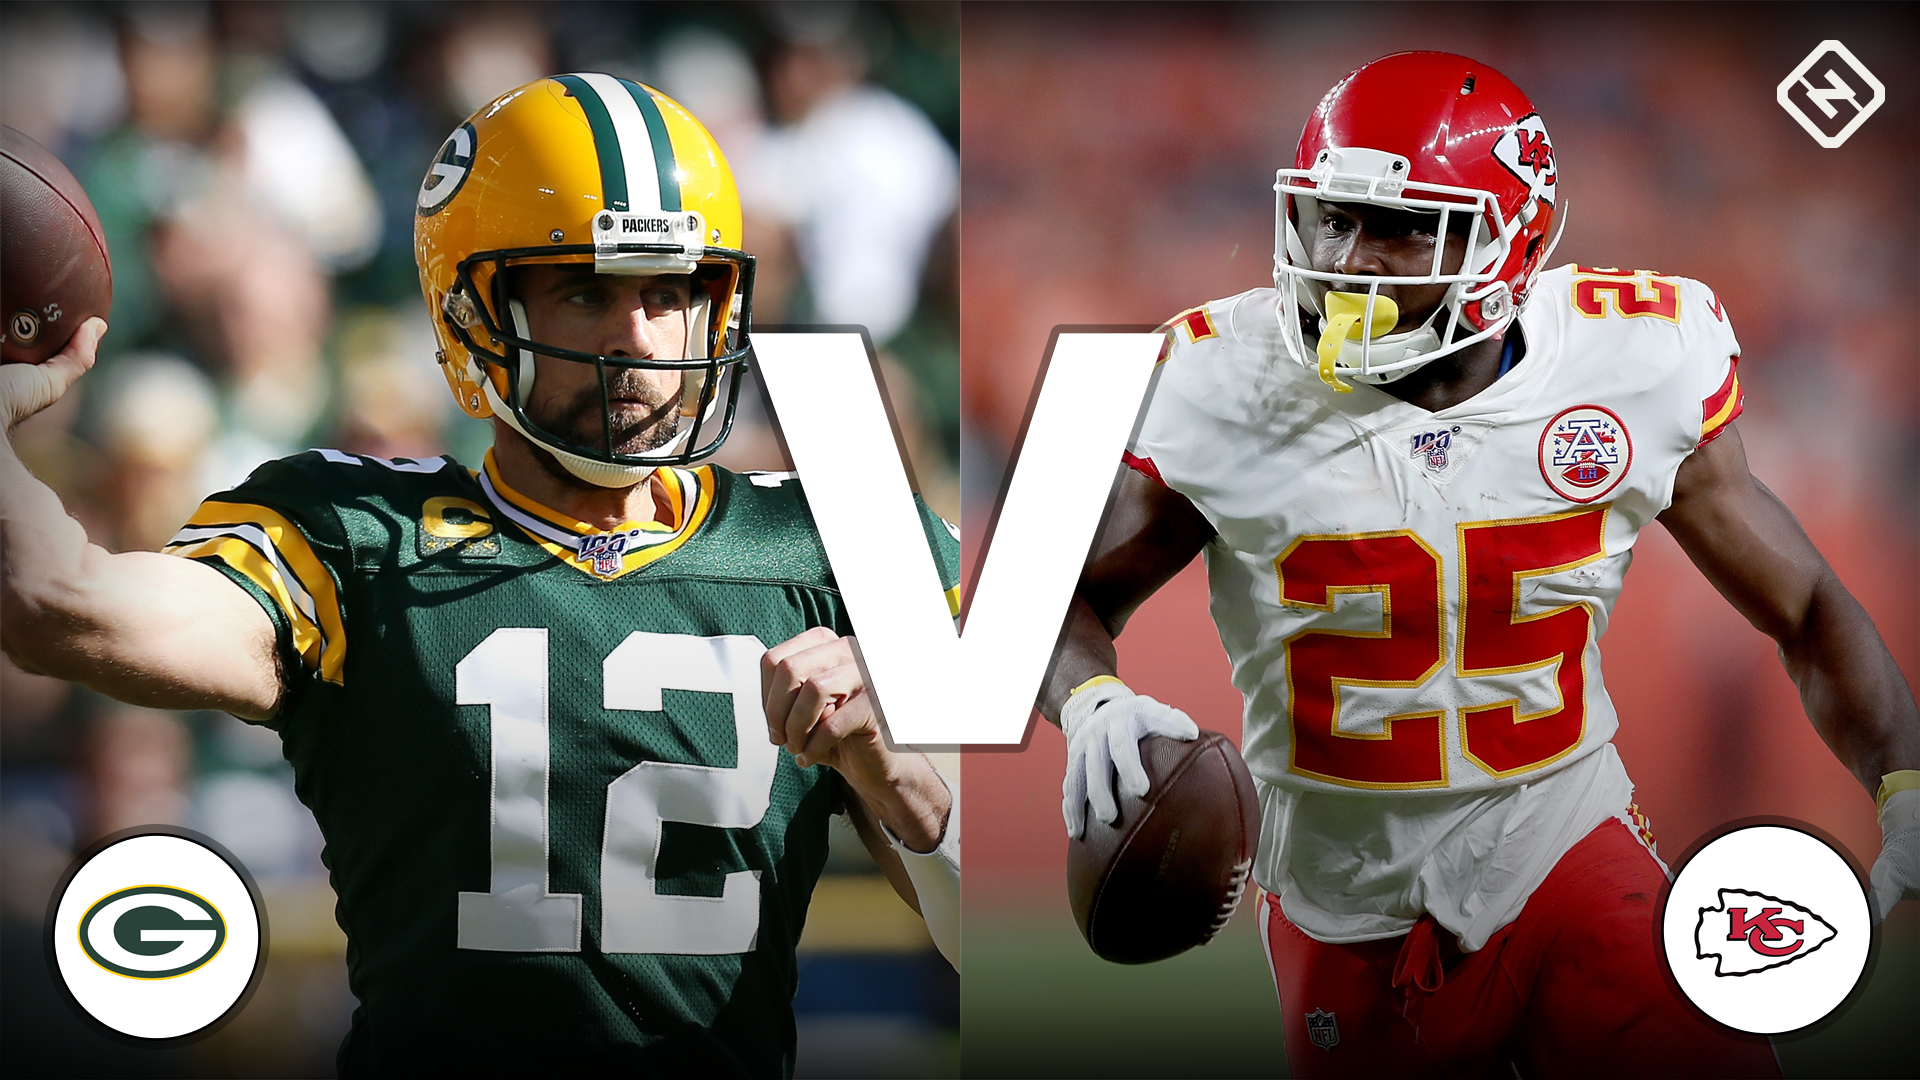 Packers vs. Chiefs: Live score, updates, highlights from 'Sunday Night Football'